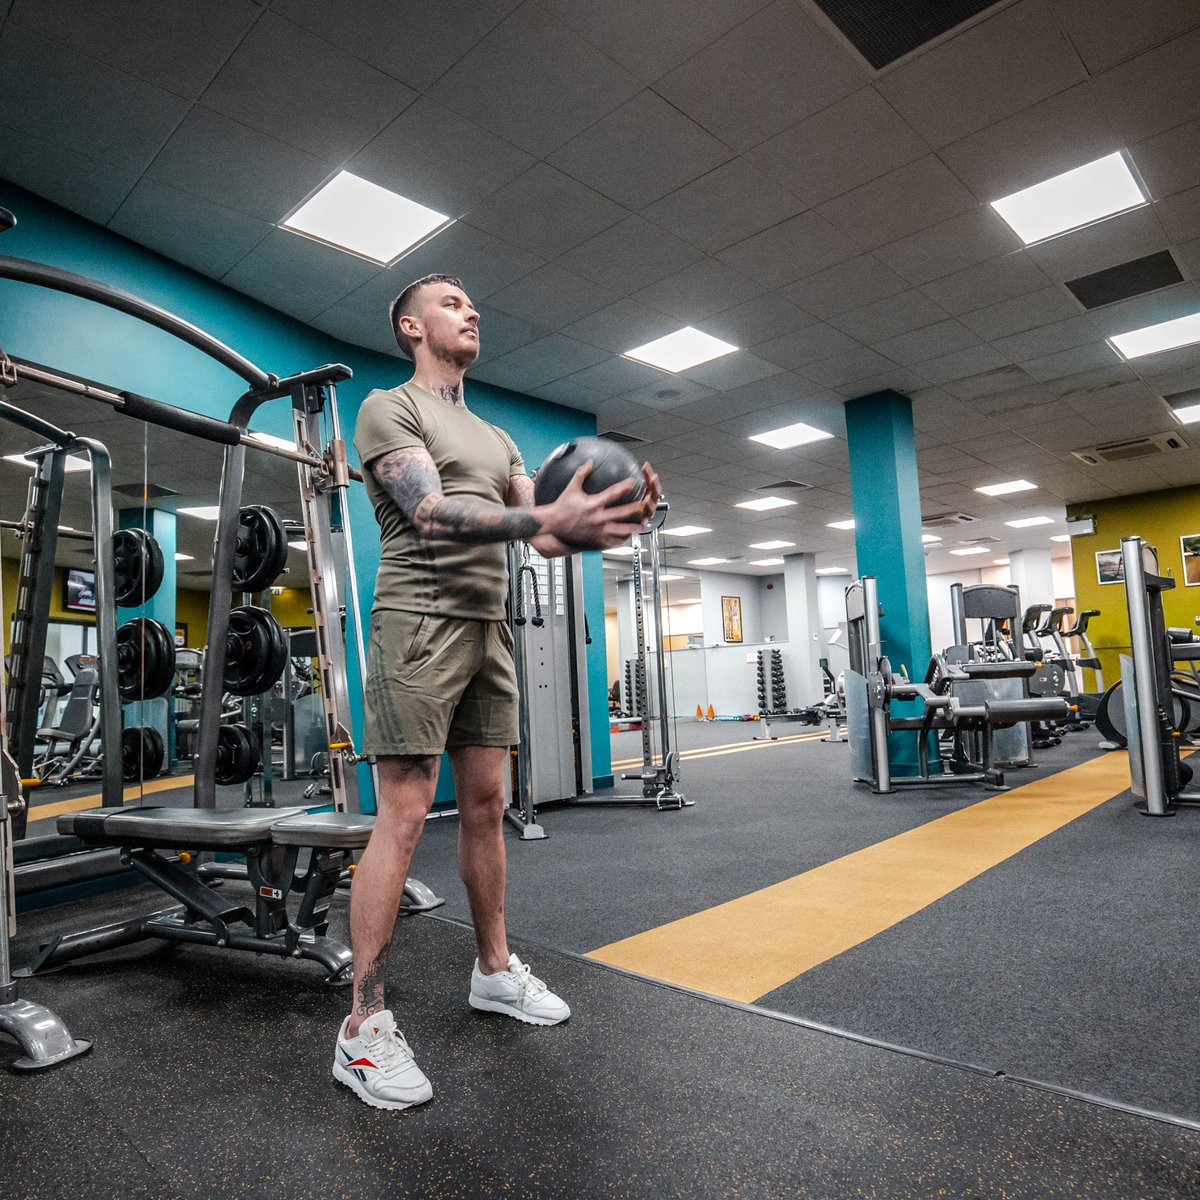 The team at Motion Health Club at The @MontenotteH led by manager @Smadden1991 is currently recruiting for the following position; Part-Time Health Club Attendant #jobfairy #jobfairycork   Please contact Steve at: smadden@themontenottehotel.com if you are interested. https://t.co/dWtY8EeYRj